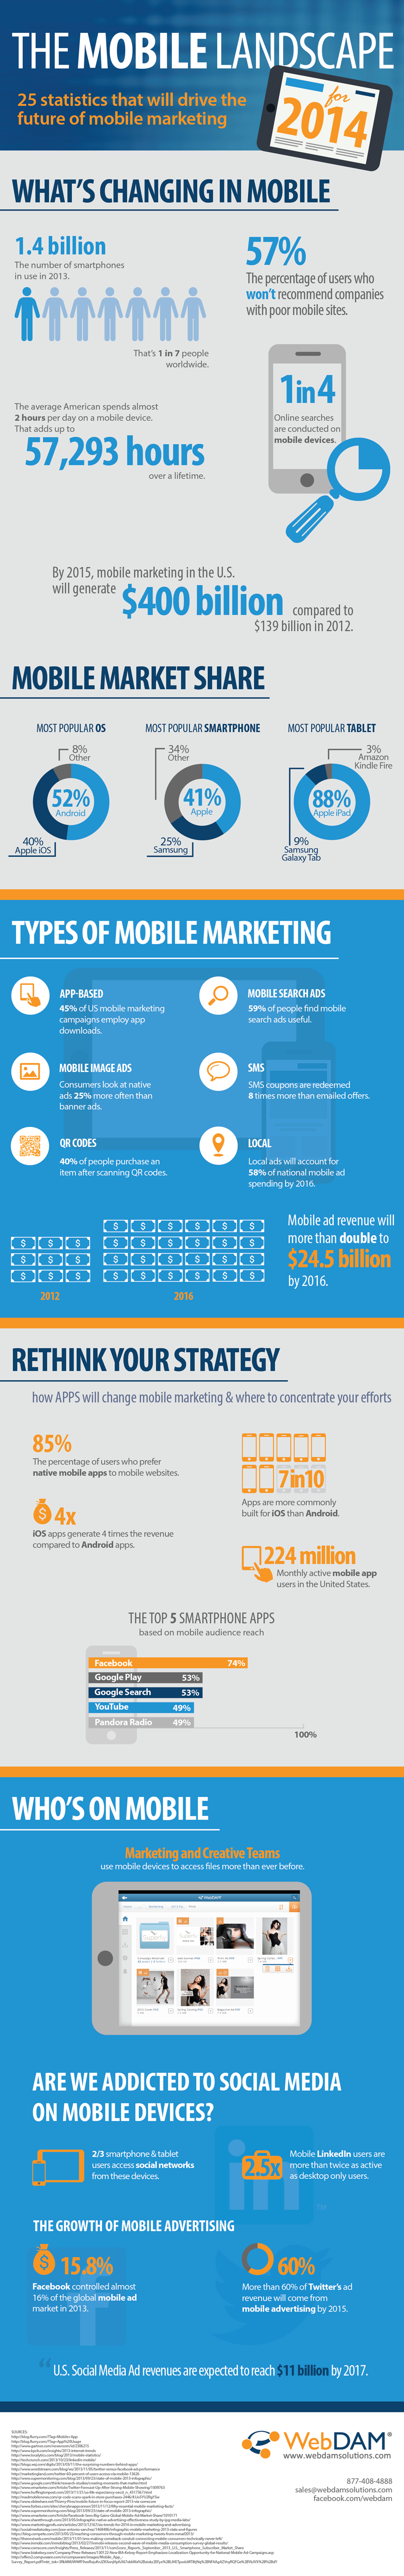 Mobile Marketing in 2014 Infographic